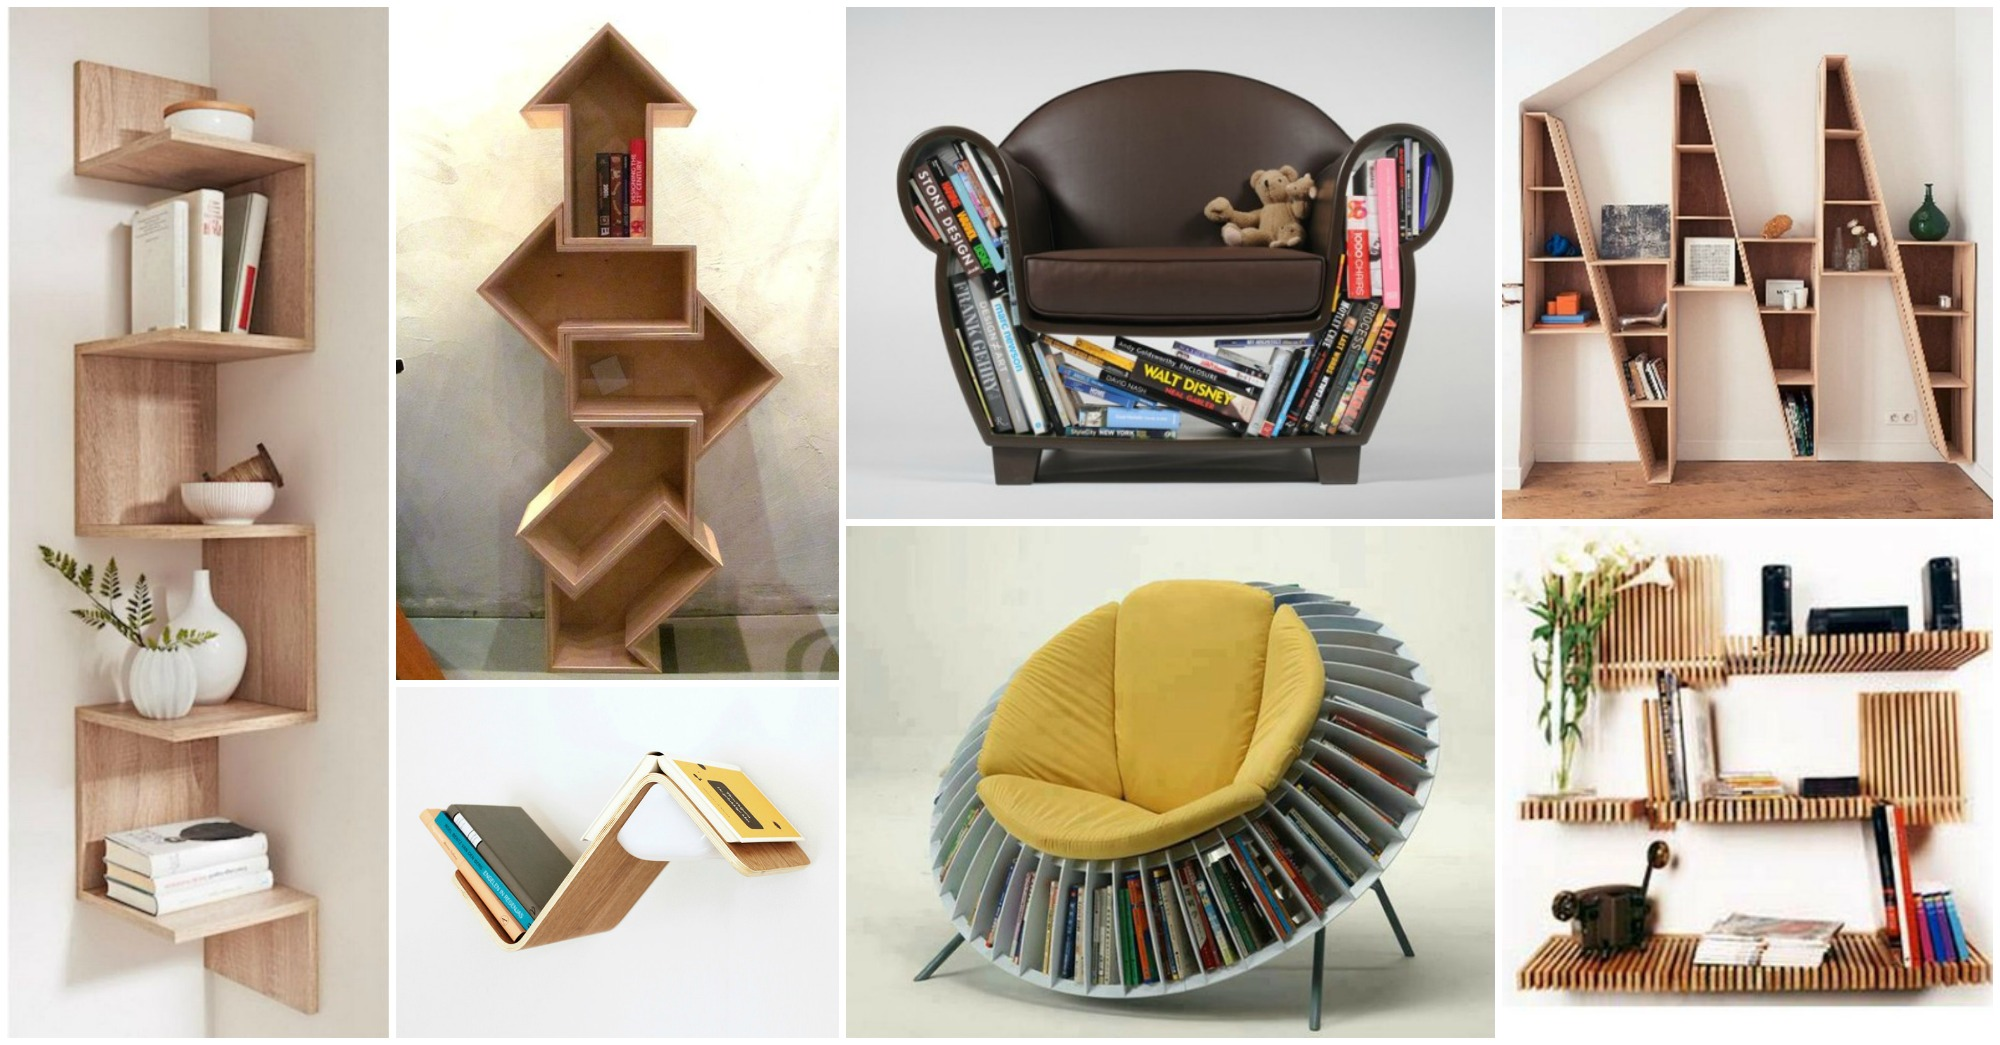 Cool Bookshelves Ideas You Should Incorporate In Your Home on Awesome Ideas  id=12117